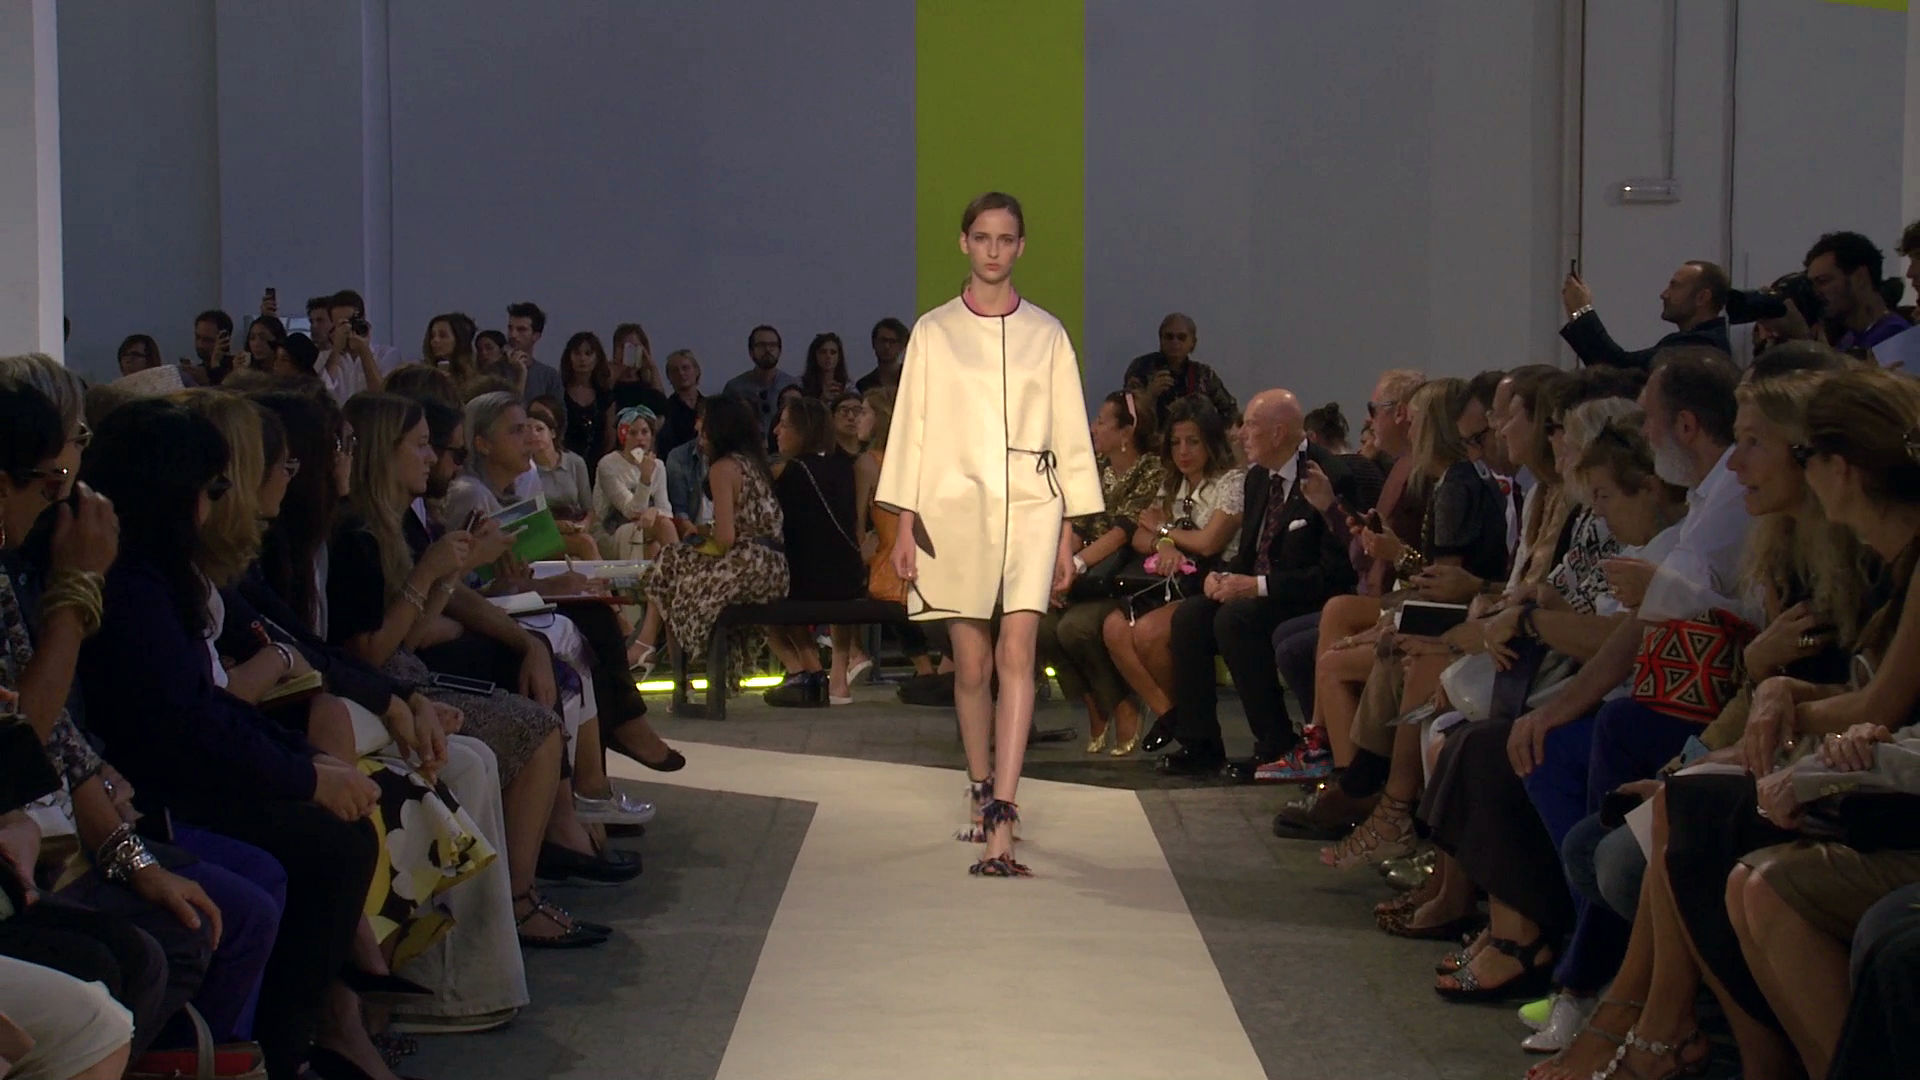 Msgm Spring Summer 2015 Women's Fashion Show - Milan Fashion Week